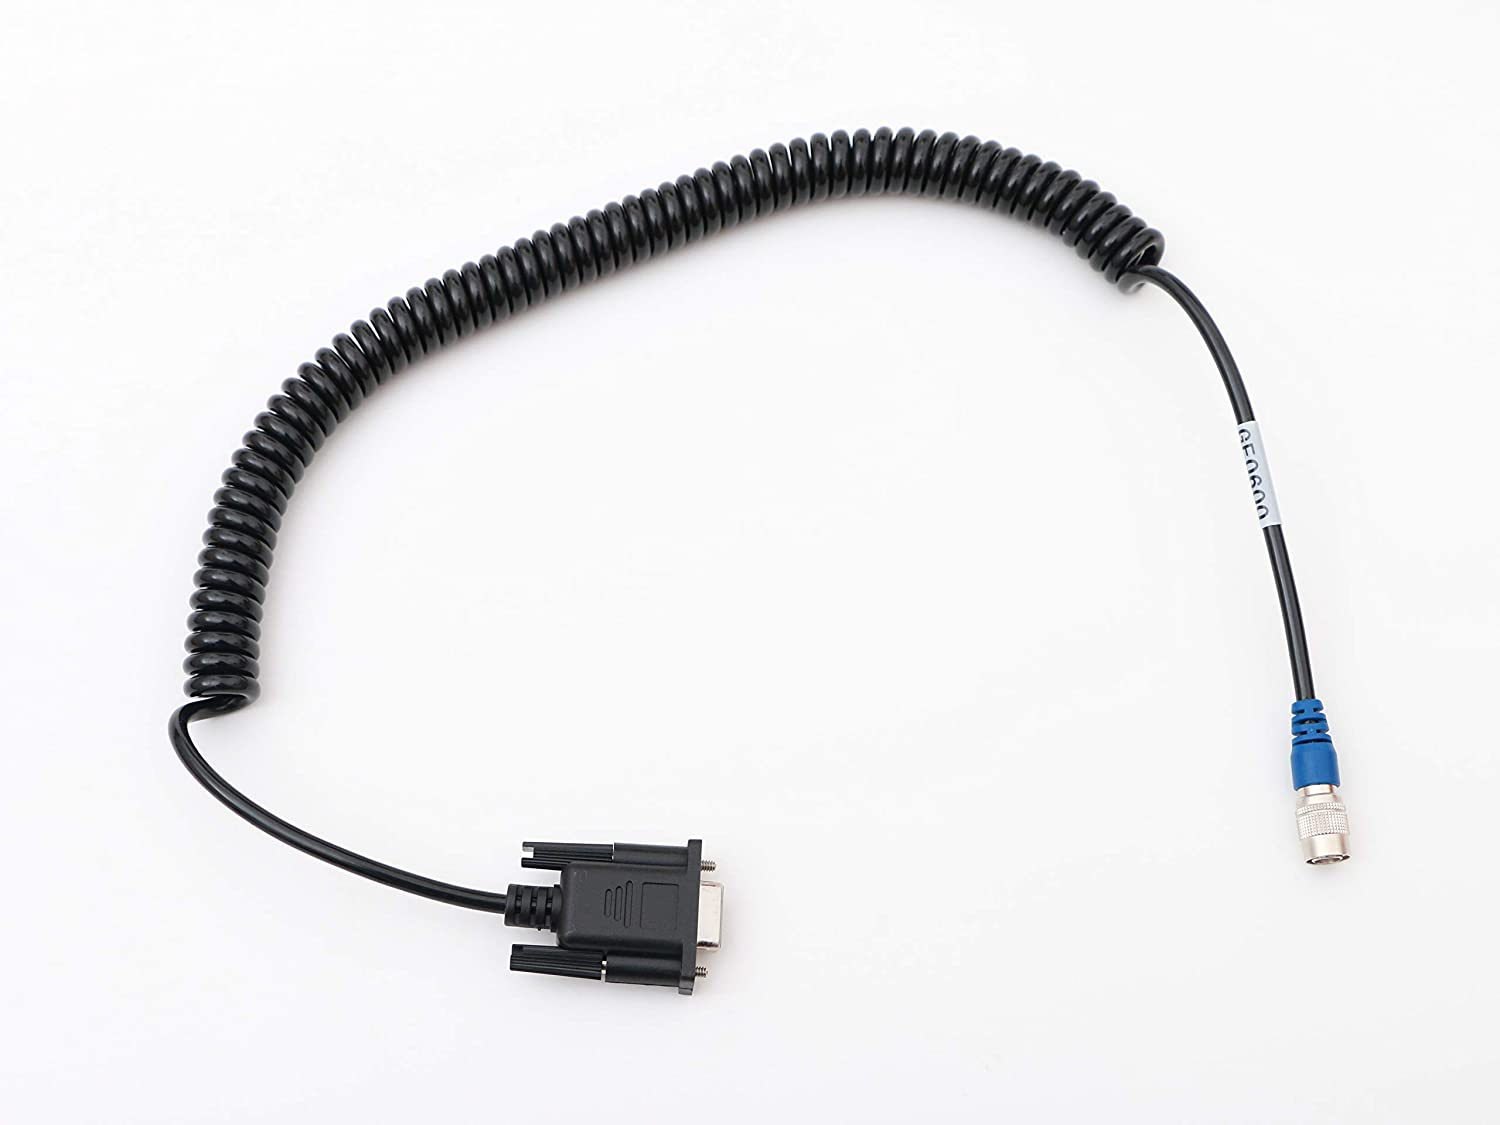 COM Data Cable for Trimble 5600 3600 Geodimeter Total Station to Data Collector